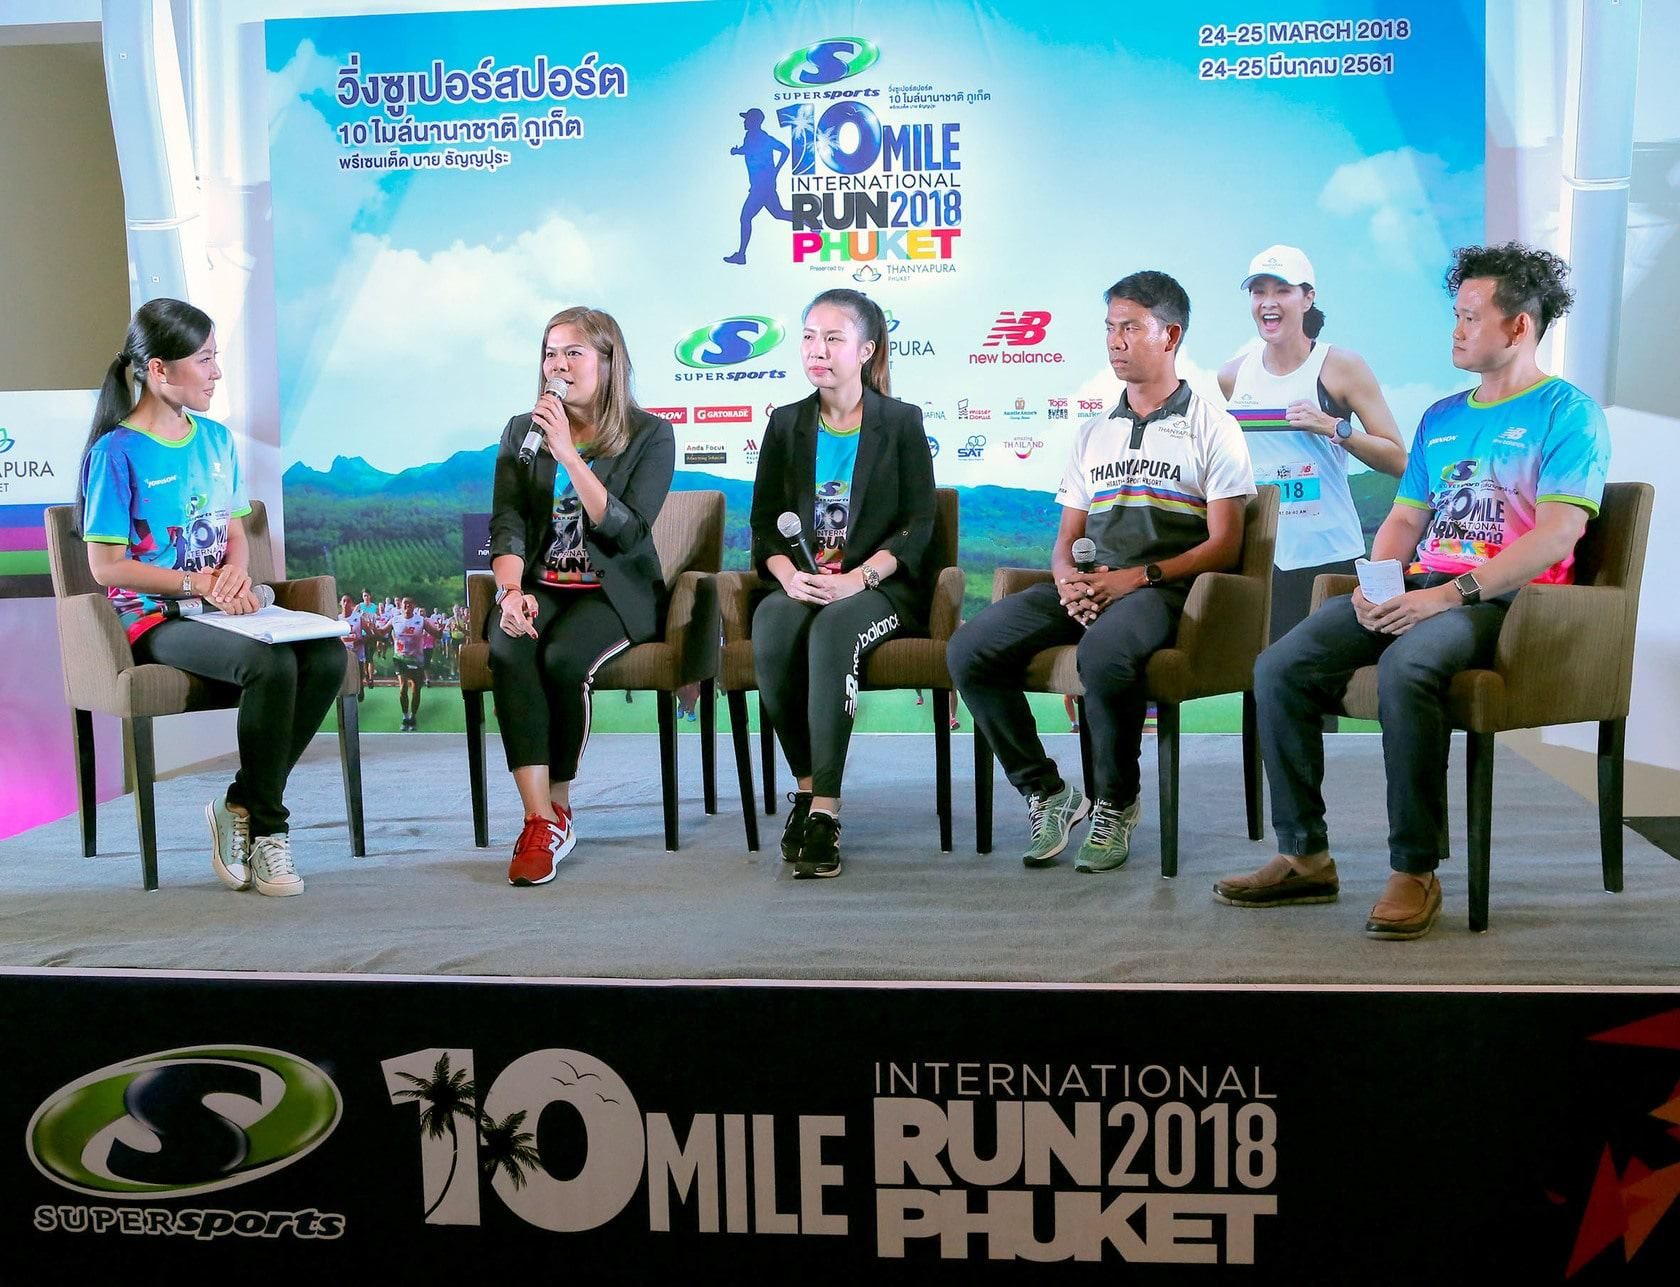 4th Supersports 10 Mile International Run set for March 24 & 25, 2018 | The Thaiger